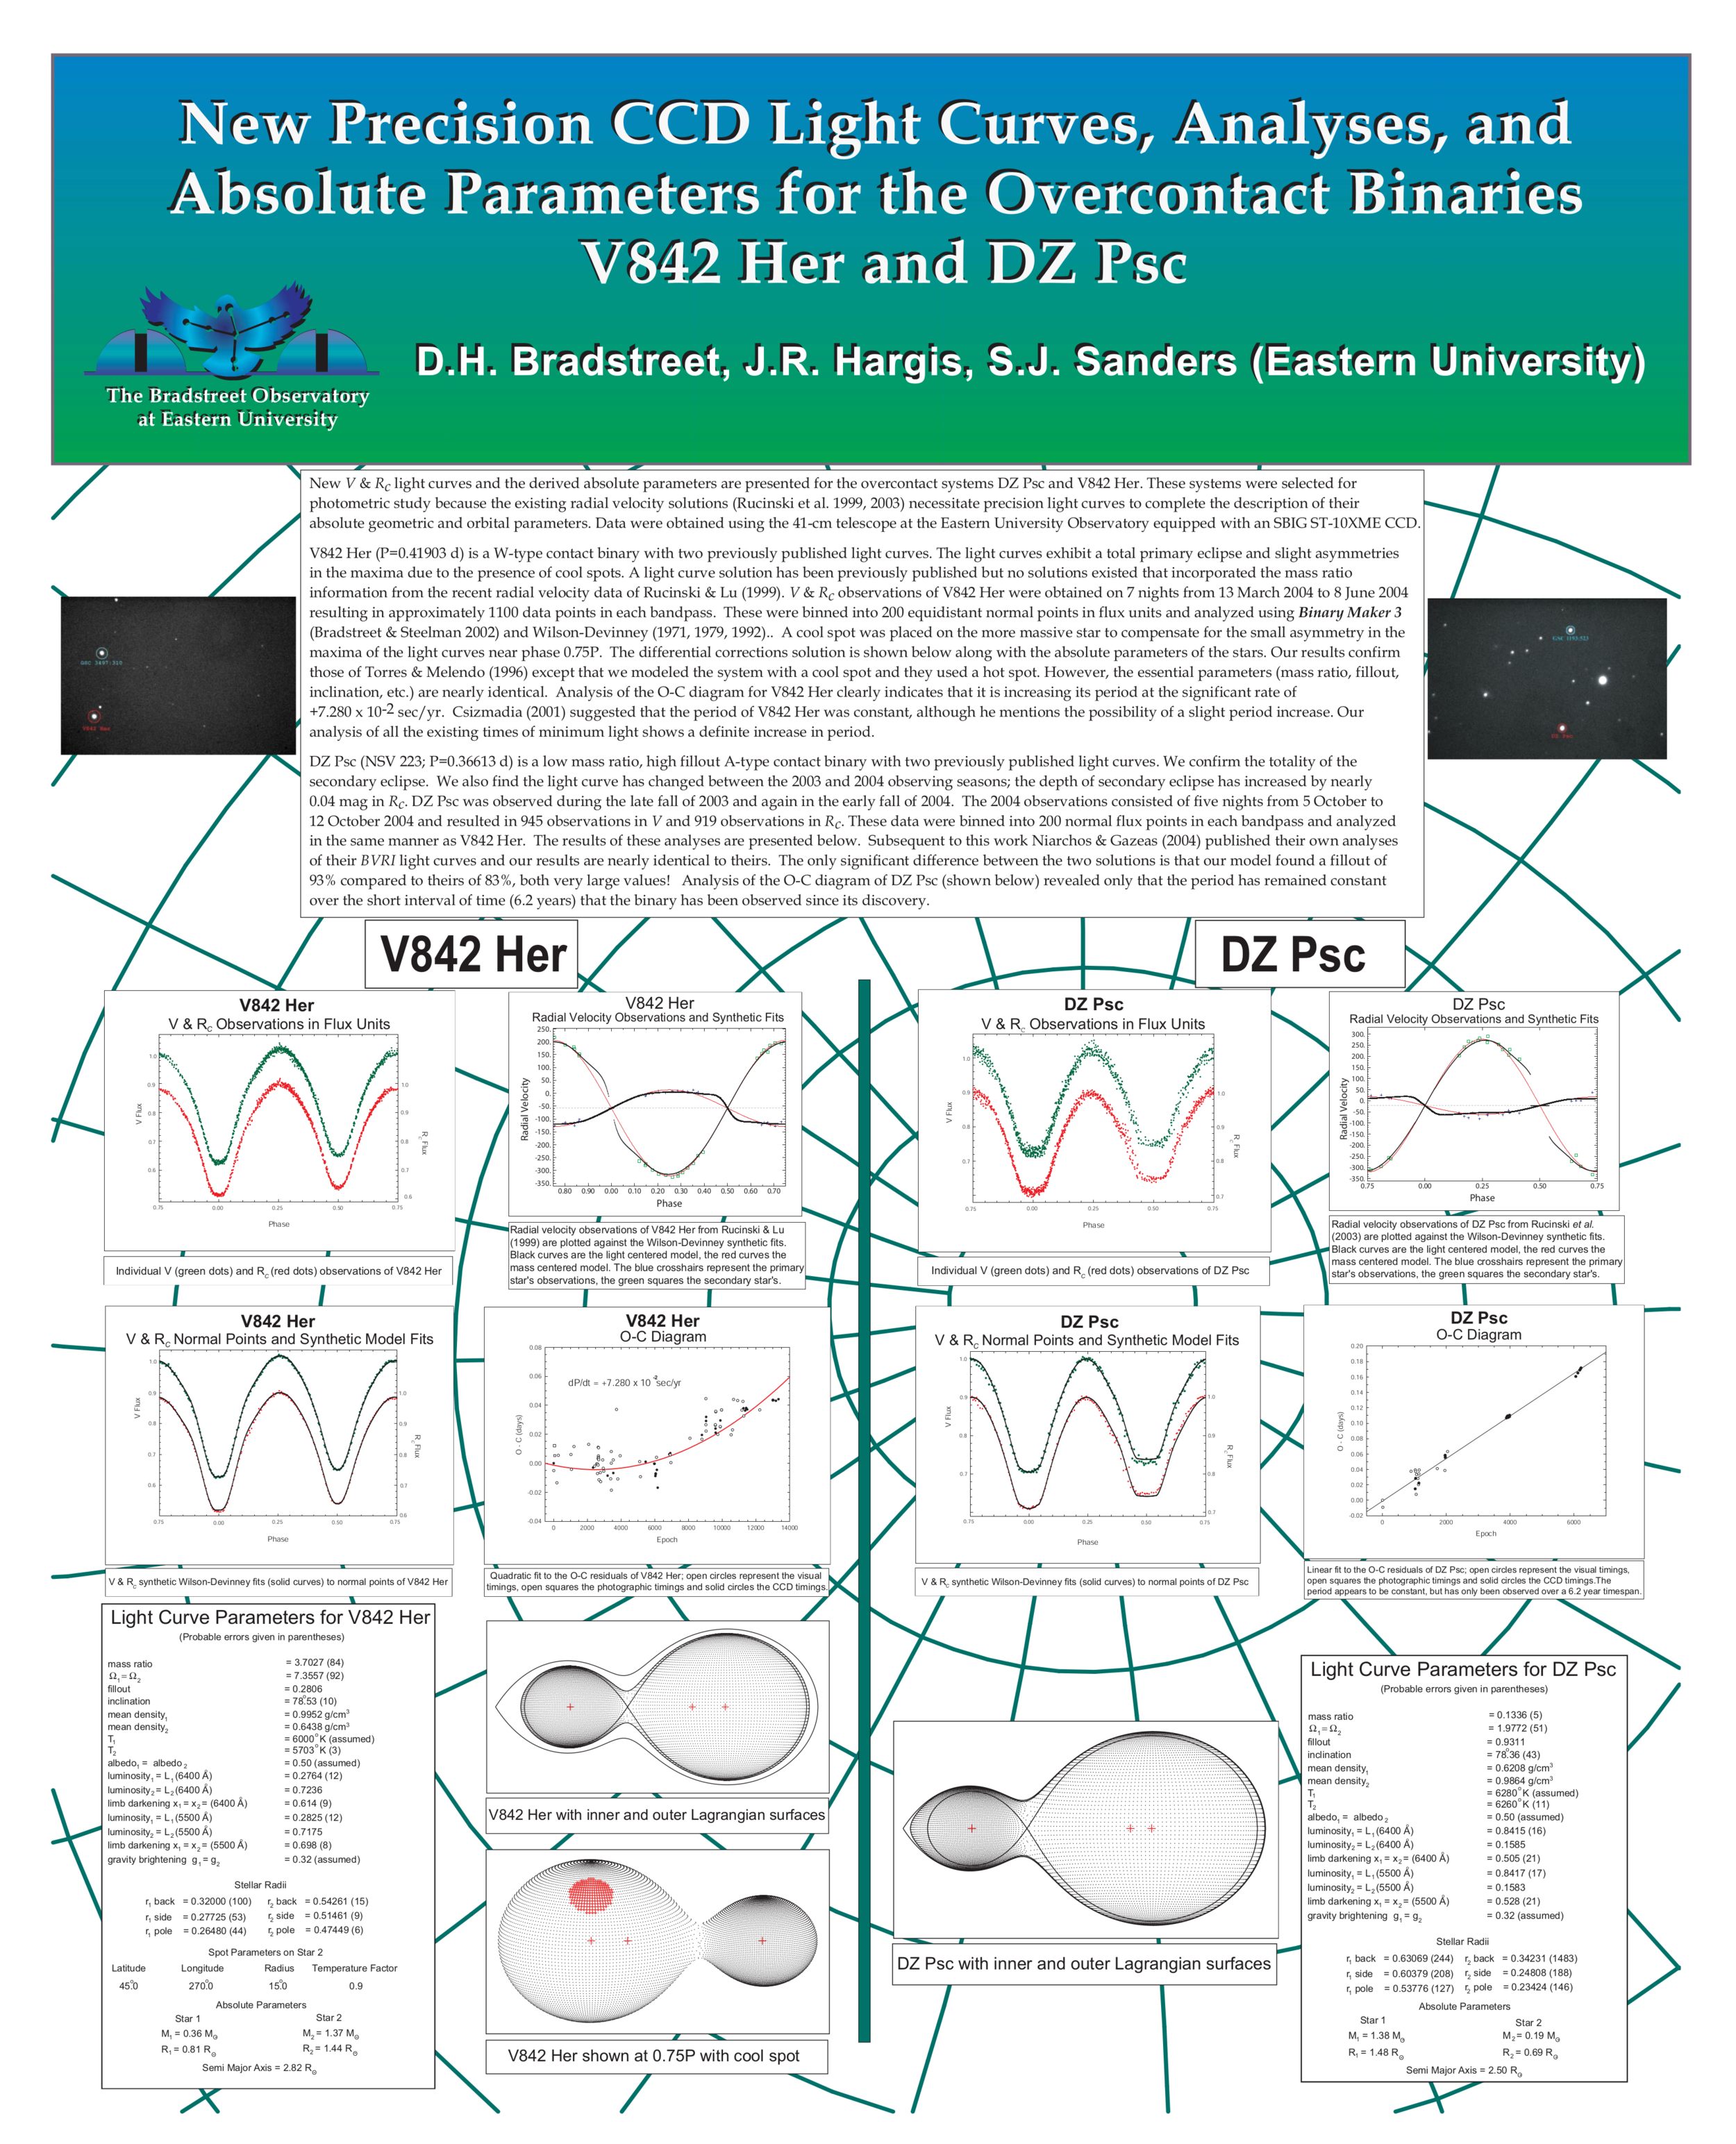 "<a href=""https://eastern-astronomy.squarespace.com/s/V842-Her-DZ-Psc-final.pdf"">V842 Her and DZ Psc</a>"